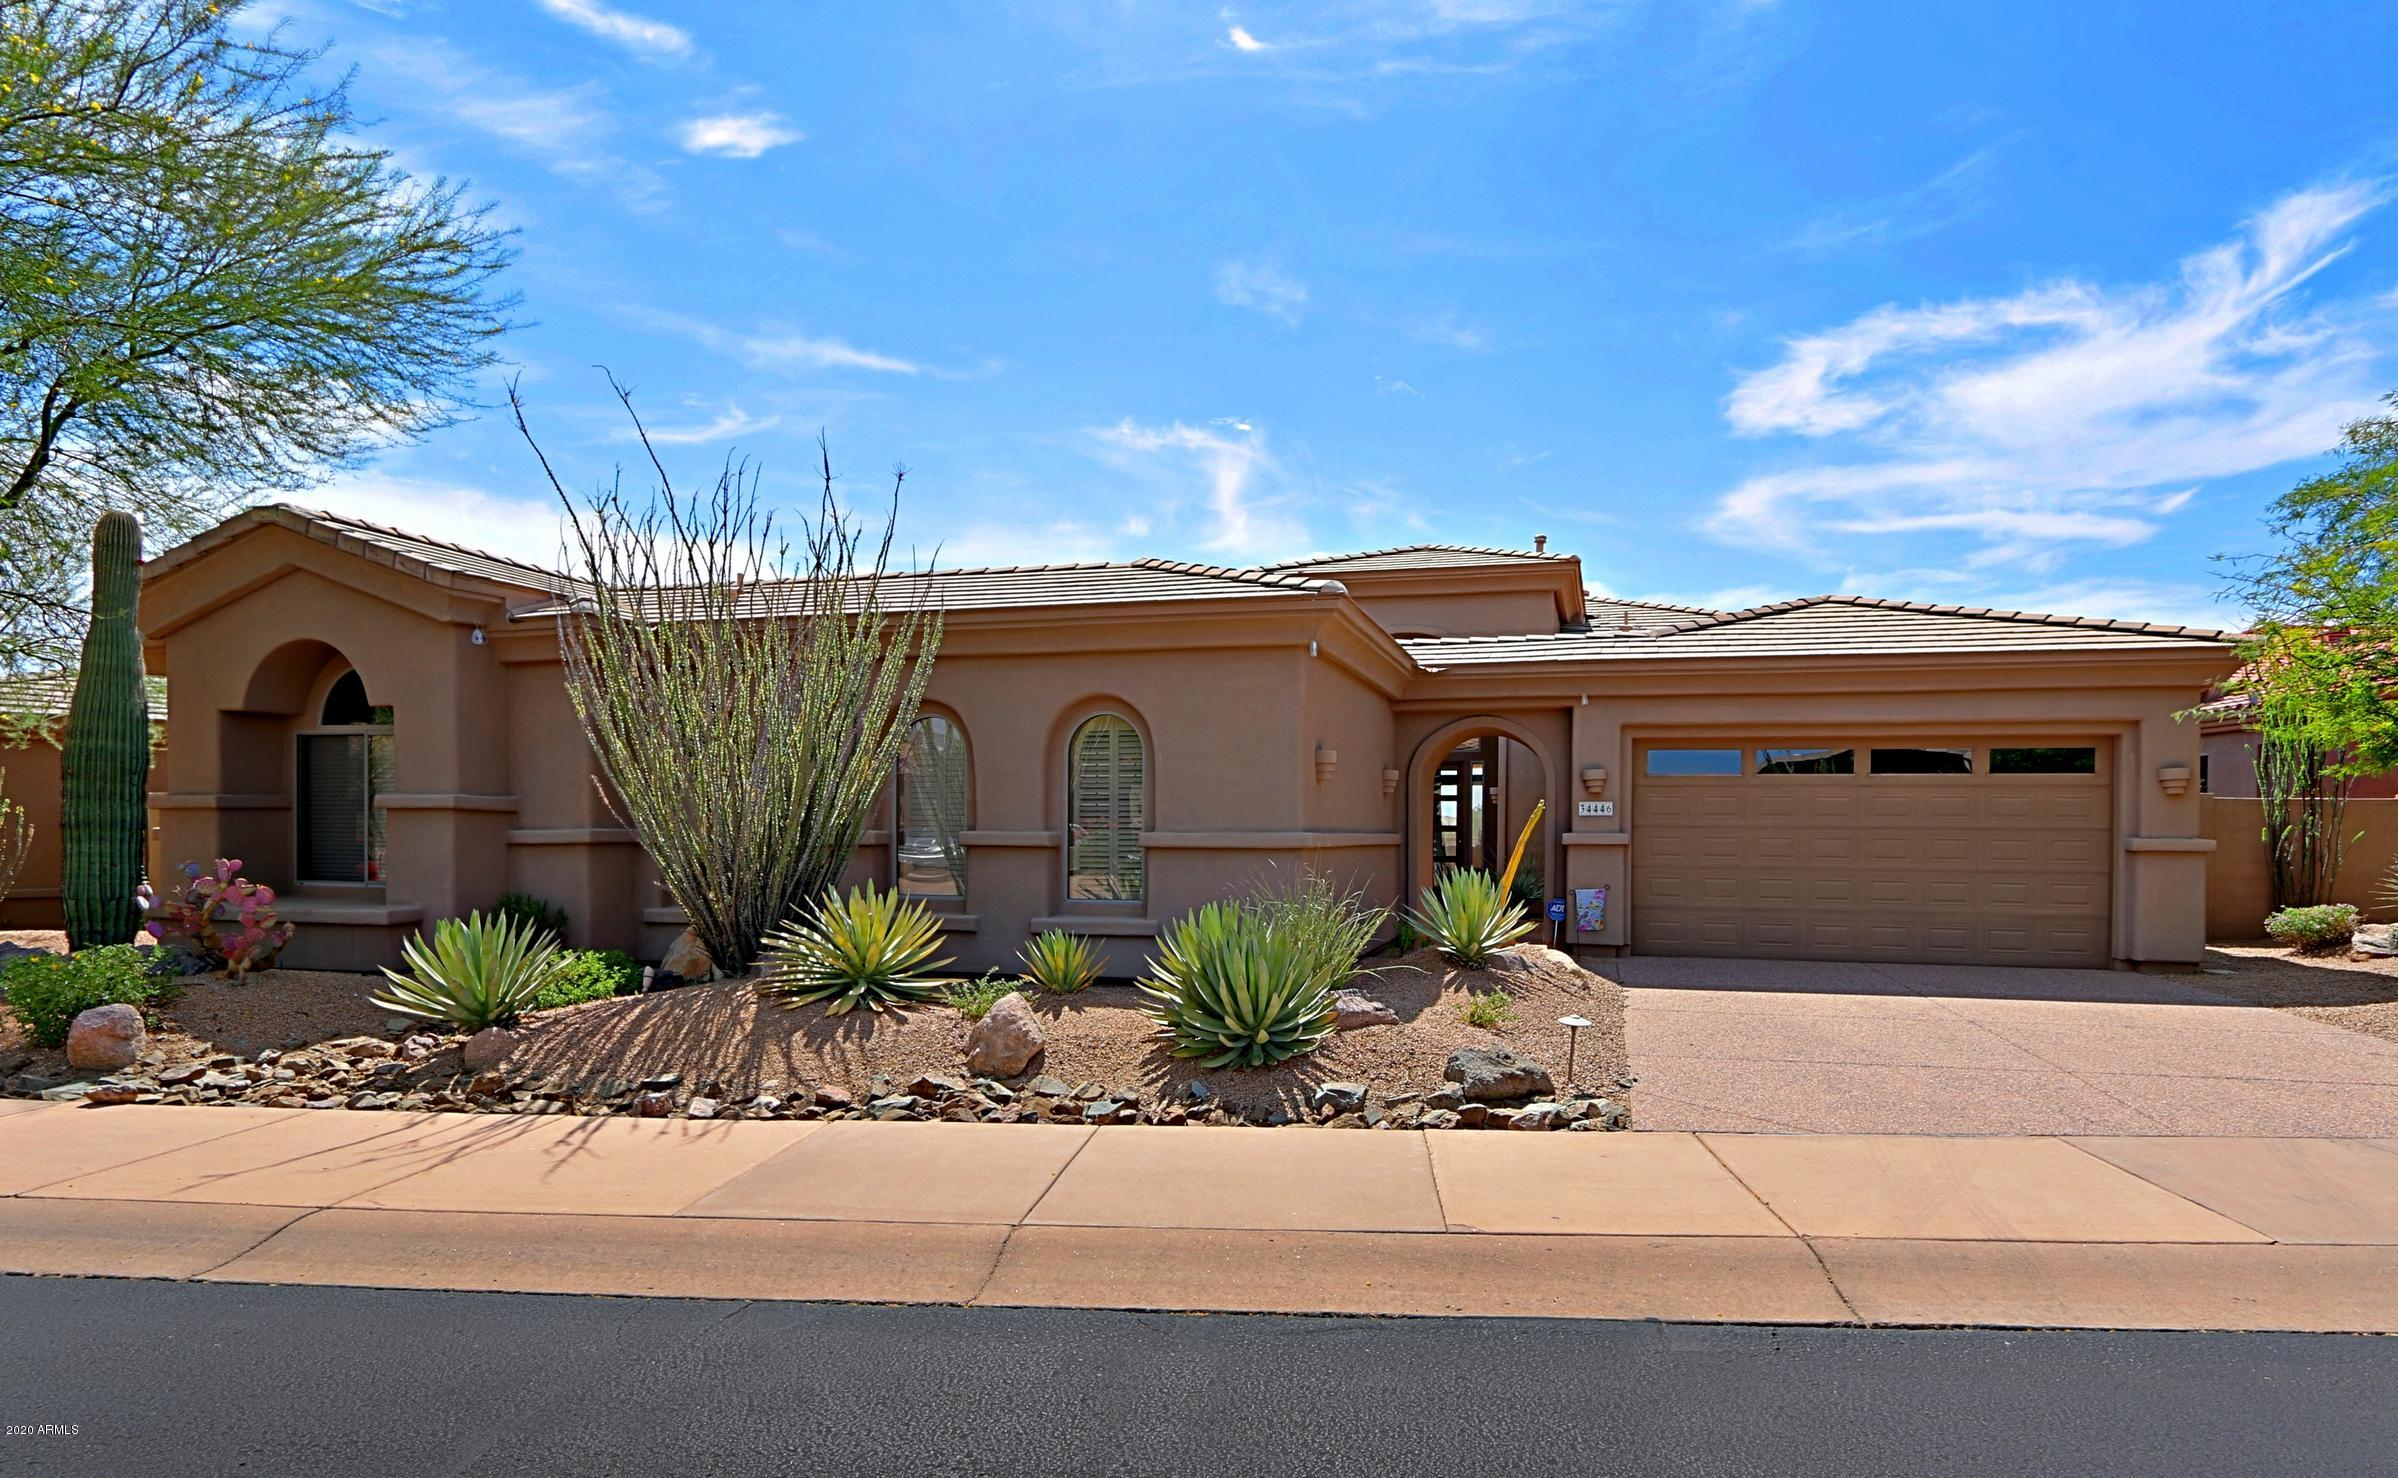 34446 N 99TH Way, Scottsdale, AZ 85262, 4 Bedrooms Bedrooms, ,Residential Lease,For Rent,34446 N 99TH Way,6251383